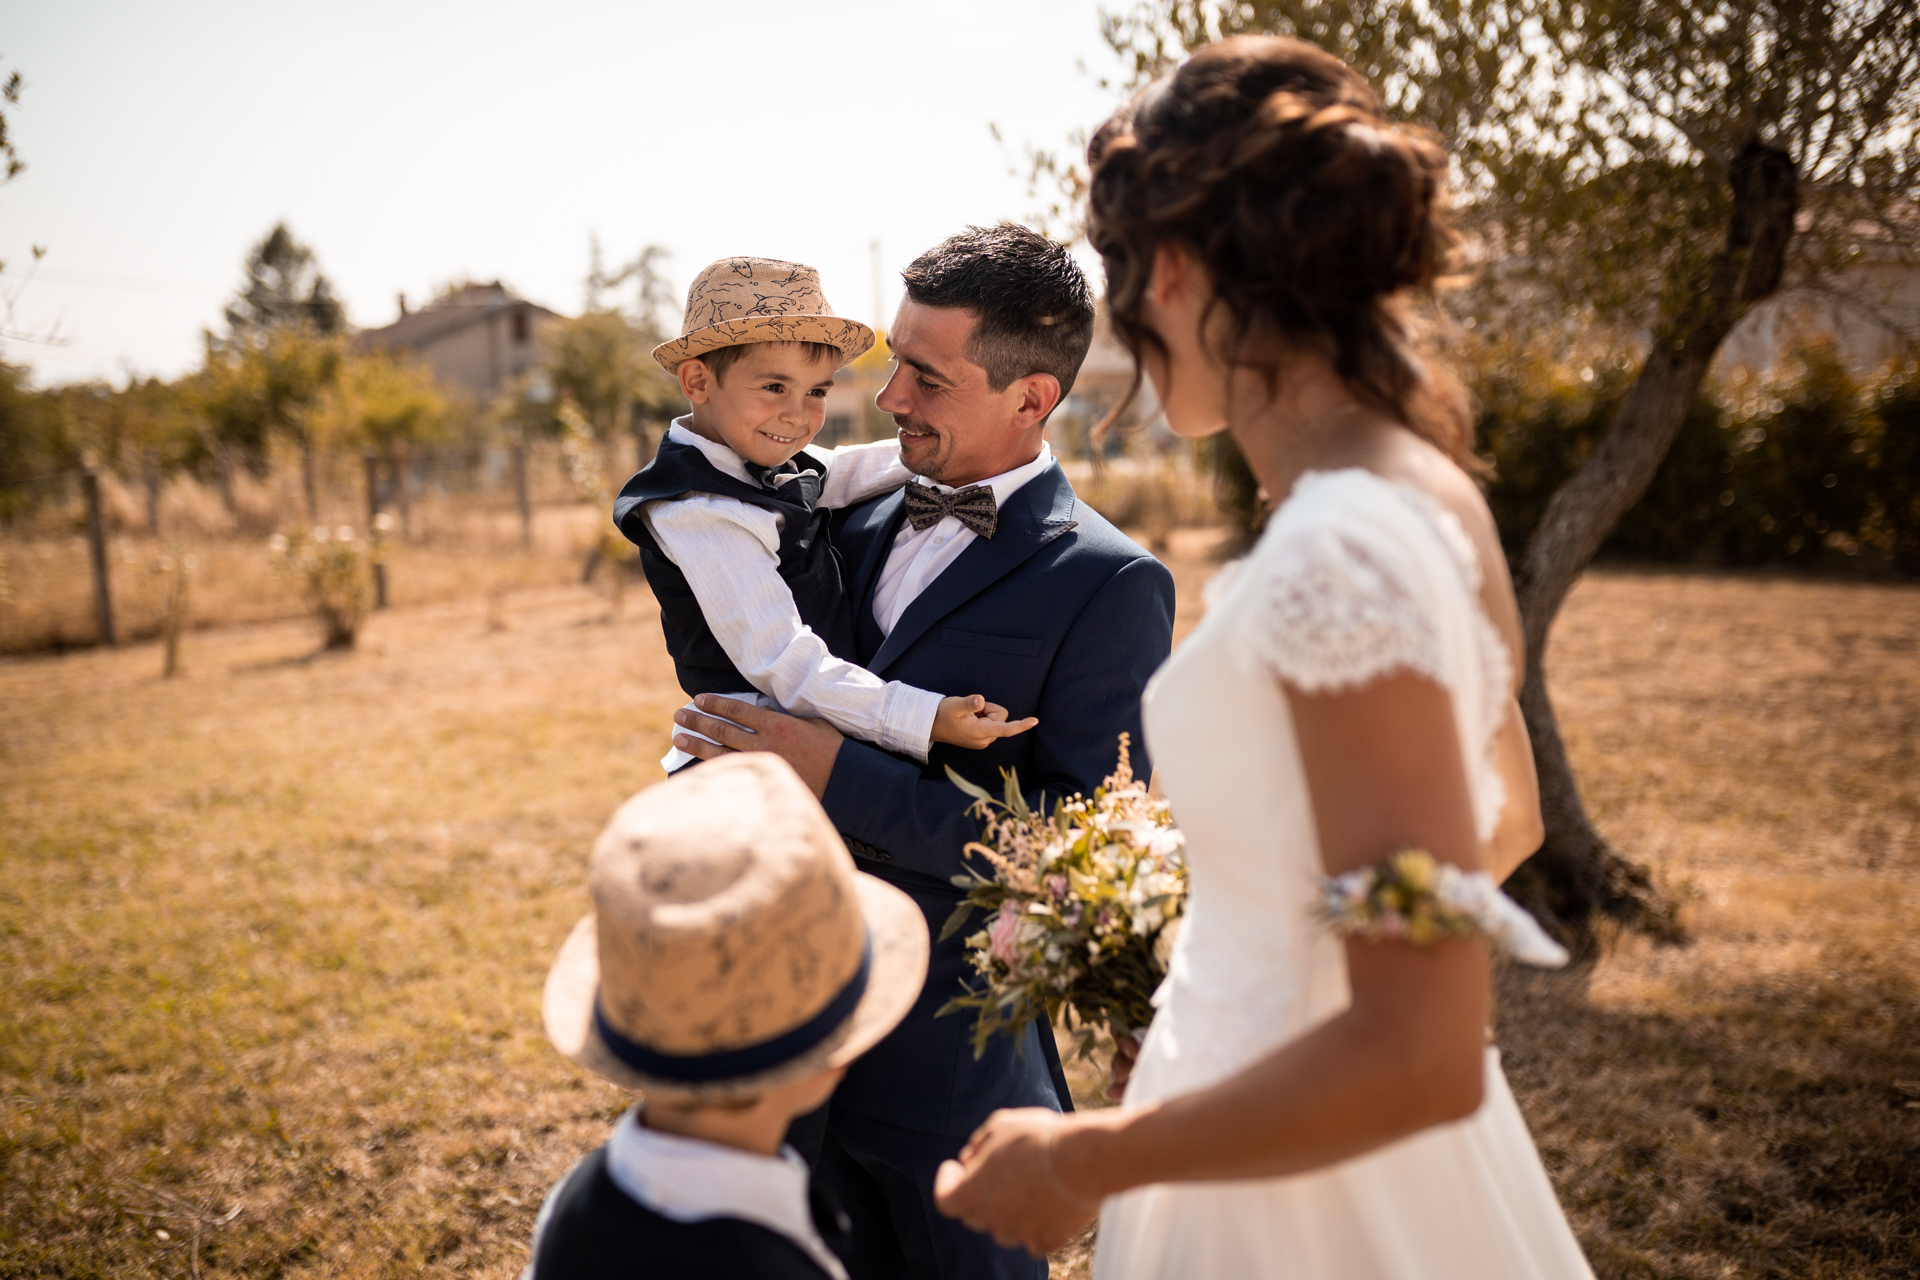 Tarn, France Wedding Photographers | It was their children's time to see their parents